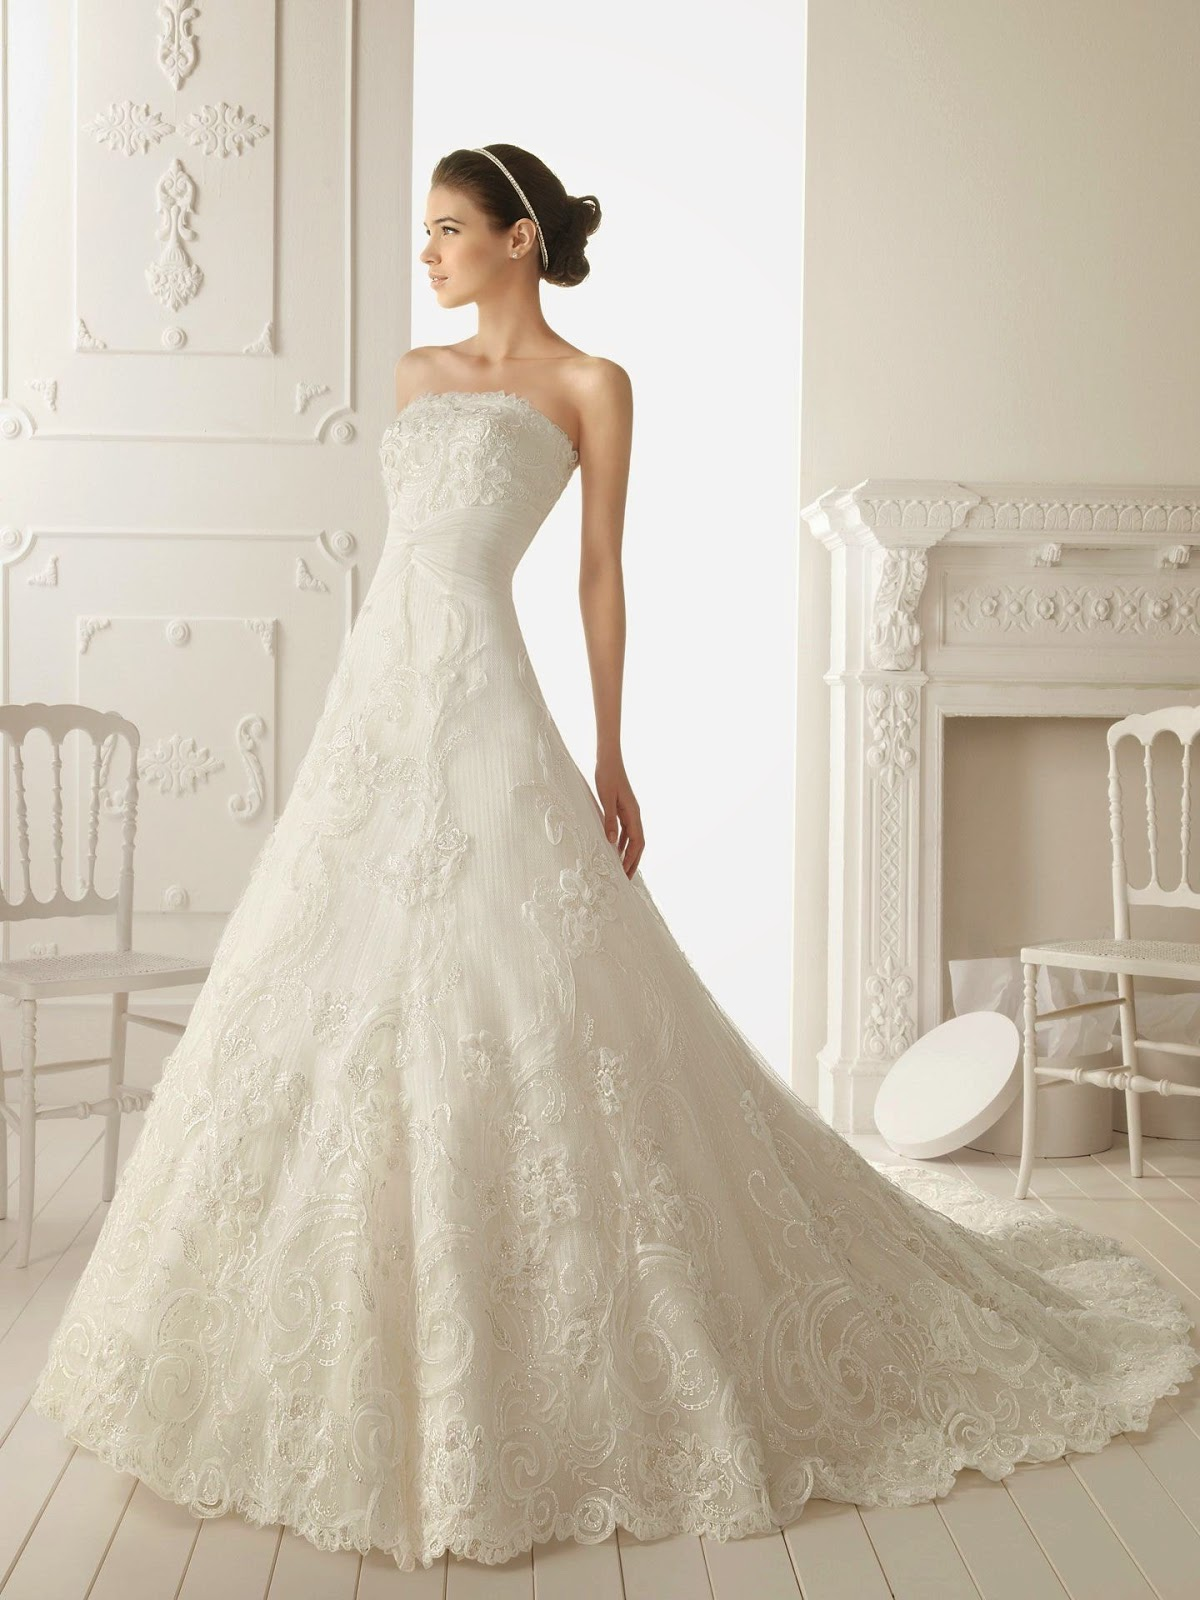 Strapless A Line Wedding Dress Idea